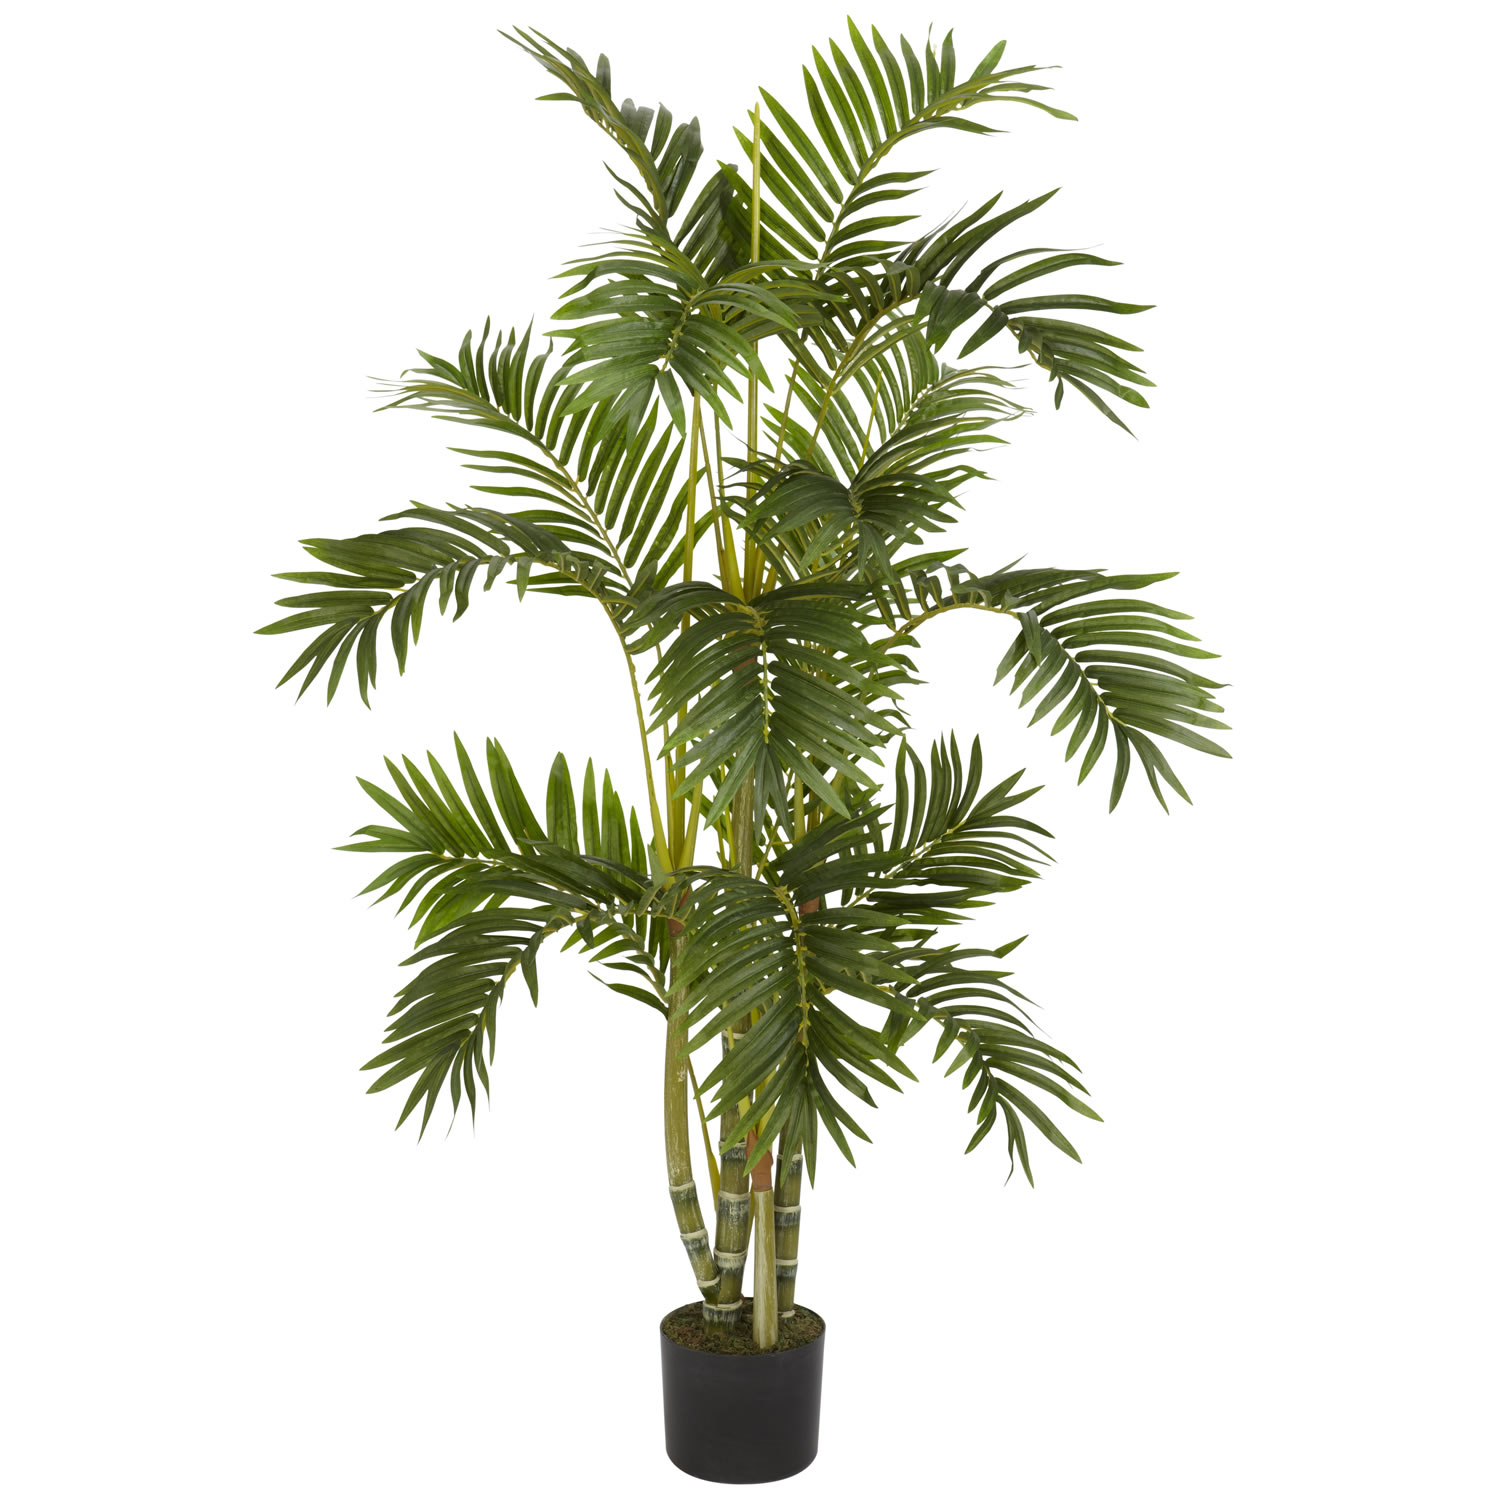 Outdoor potted plant png